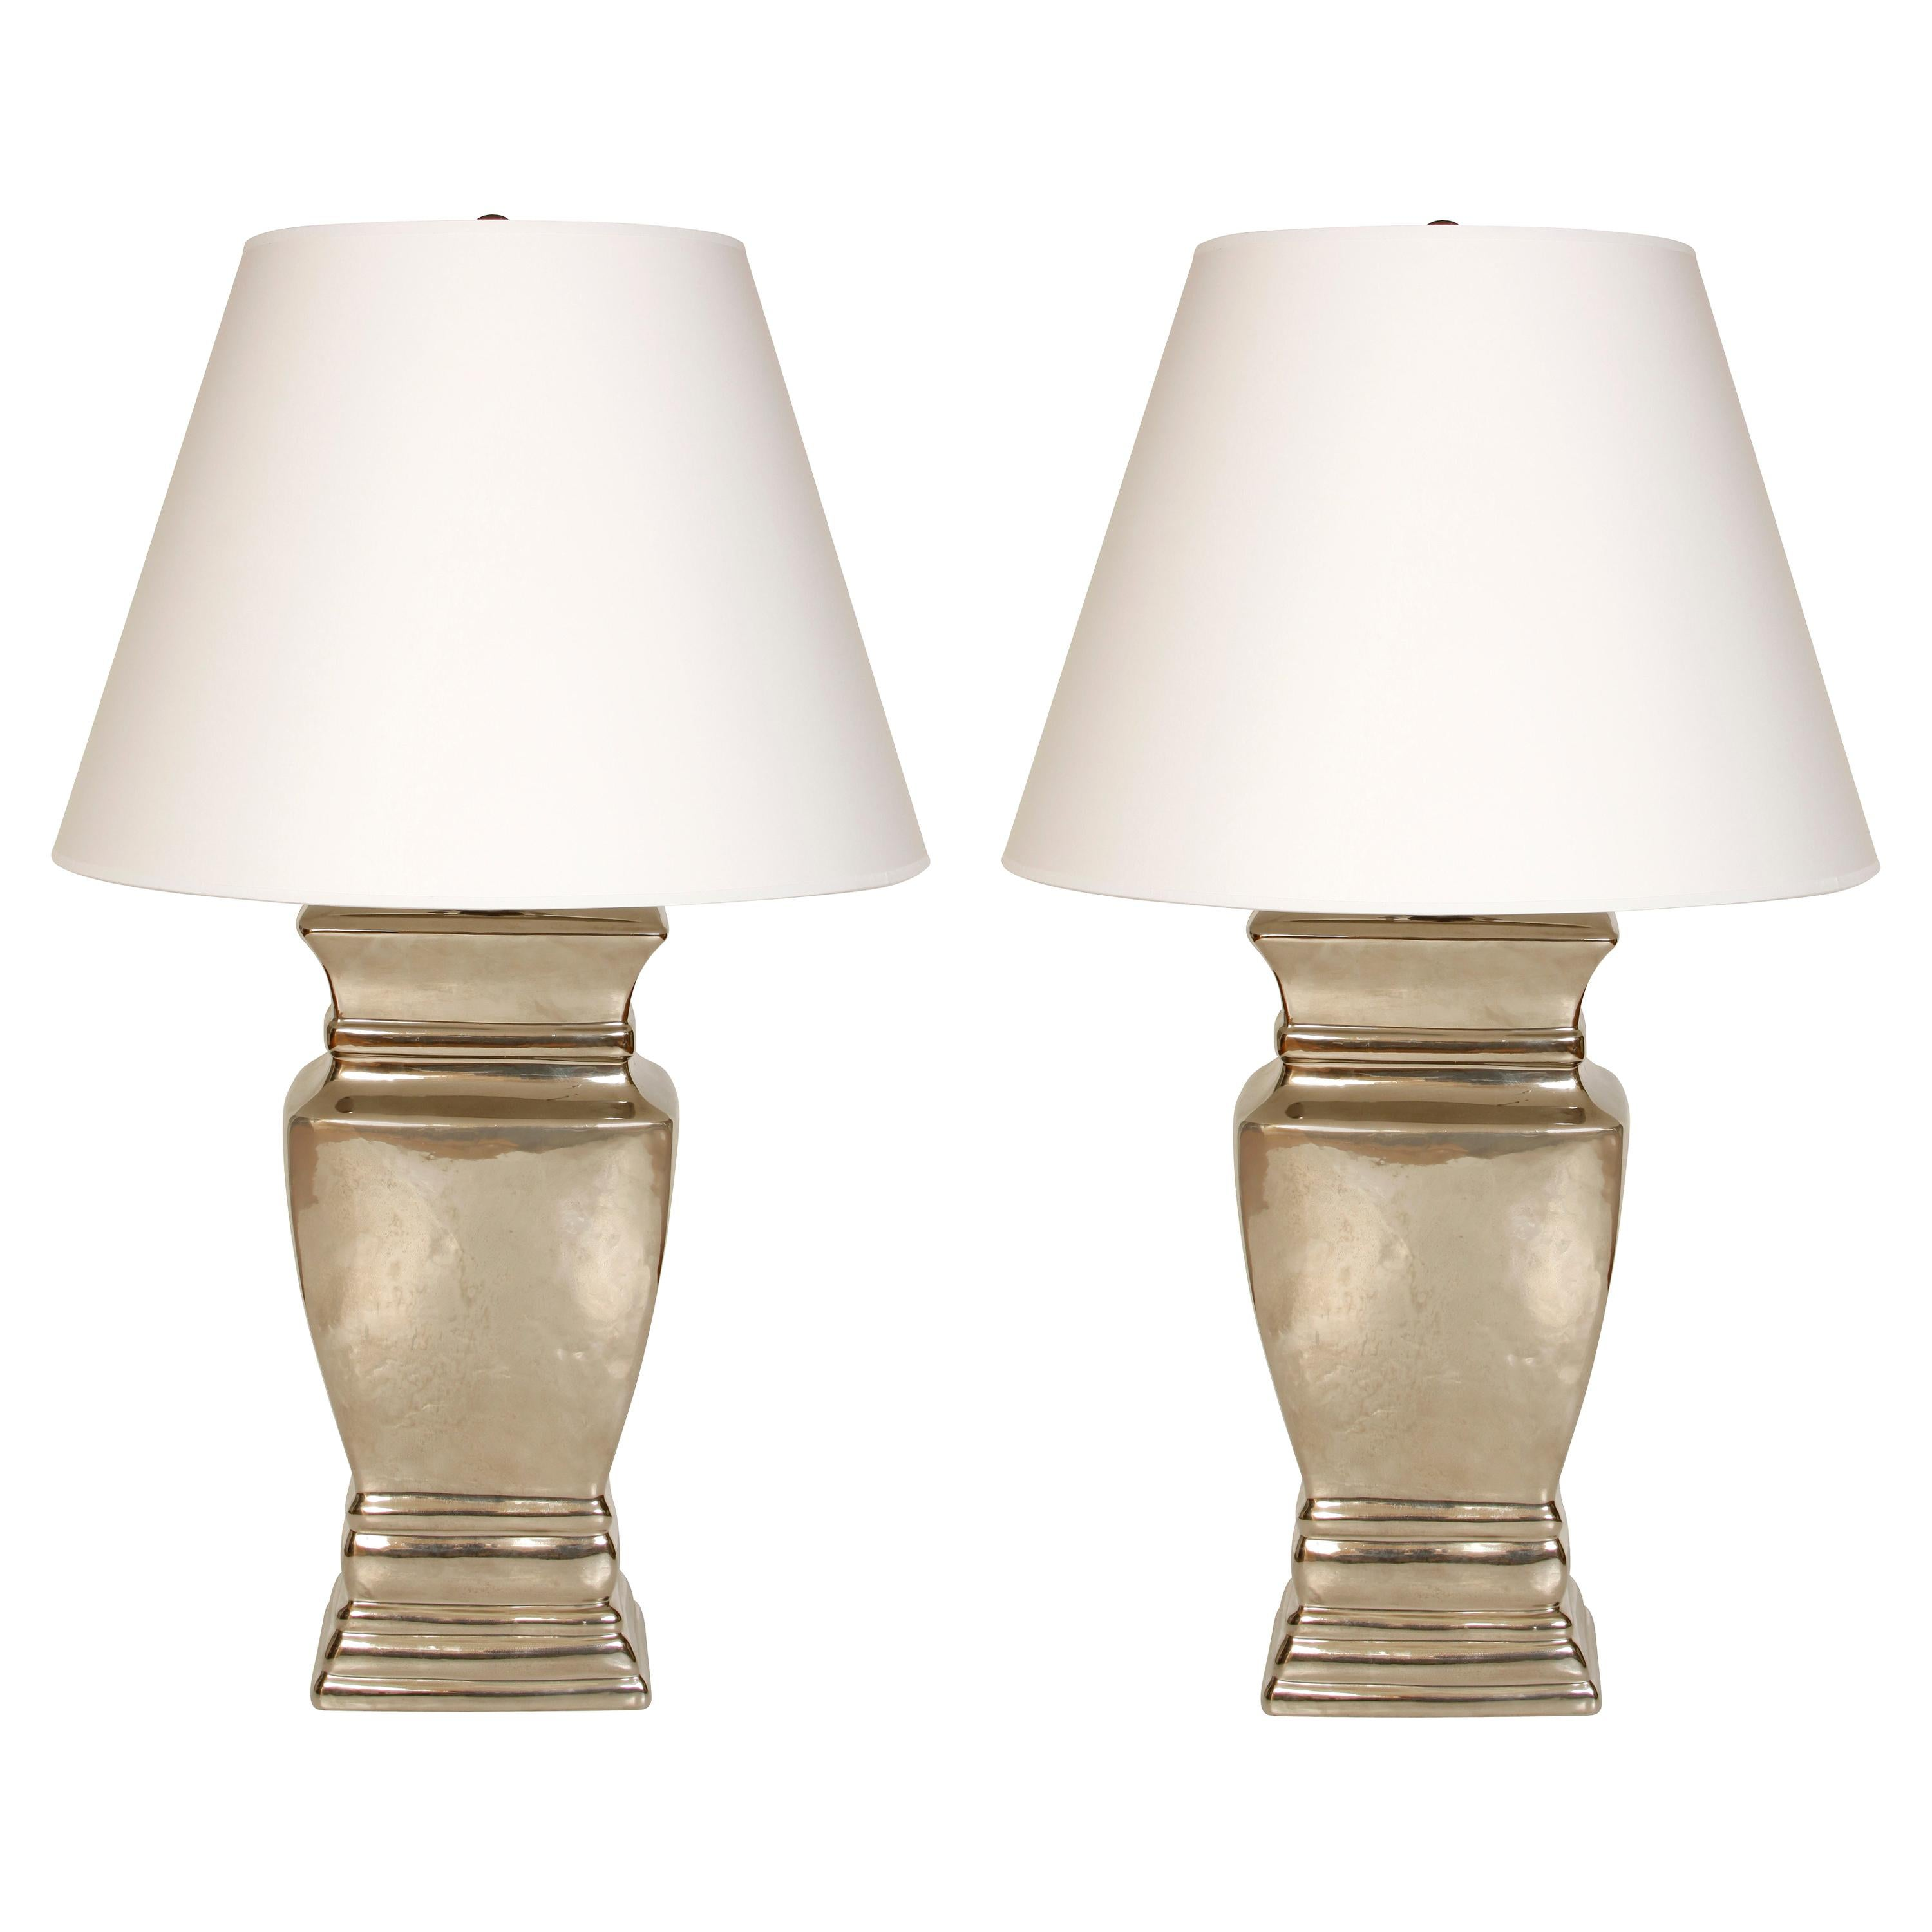 Pair of Modern Silvered Ceramic Lamps